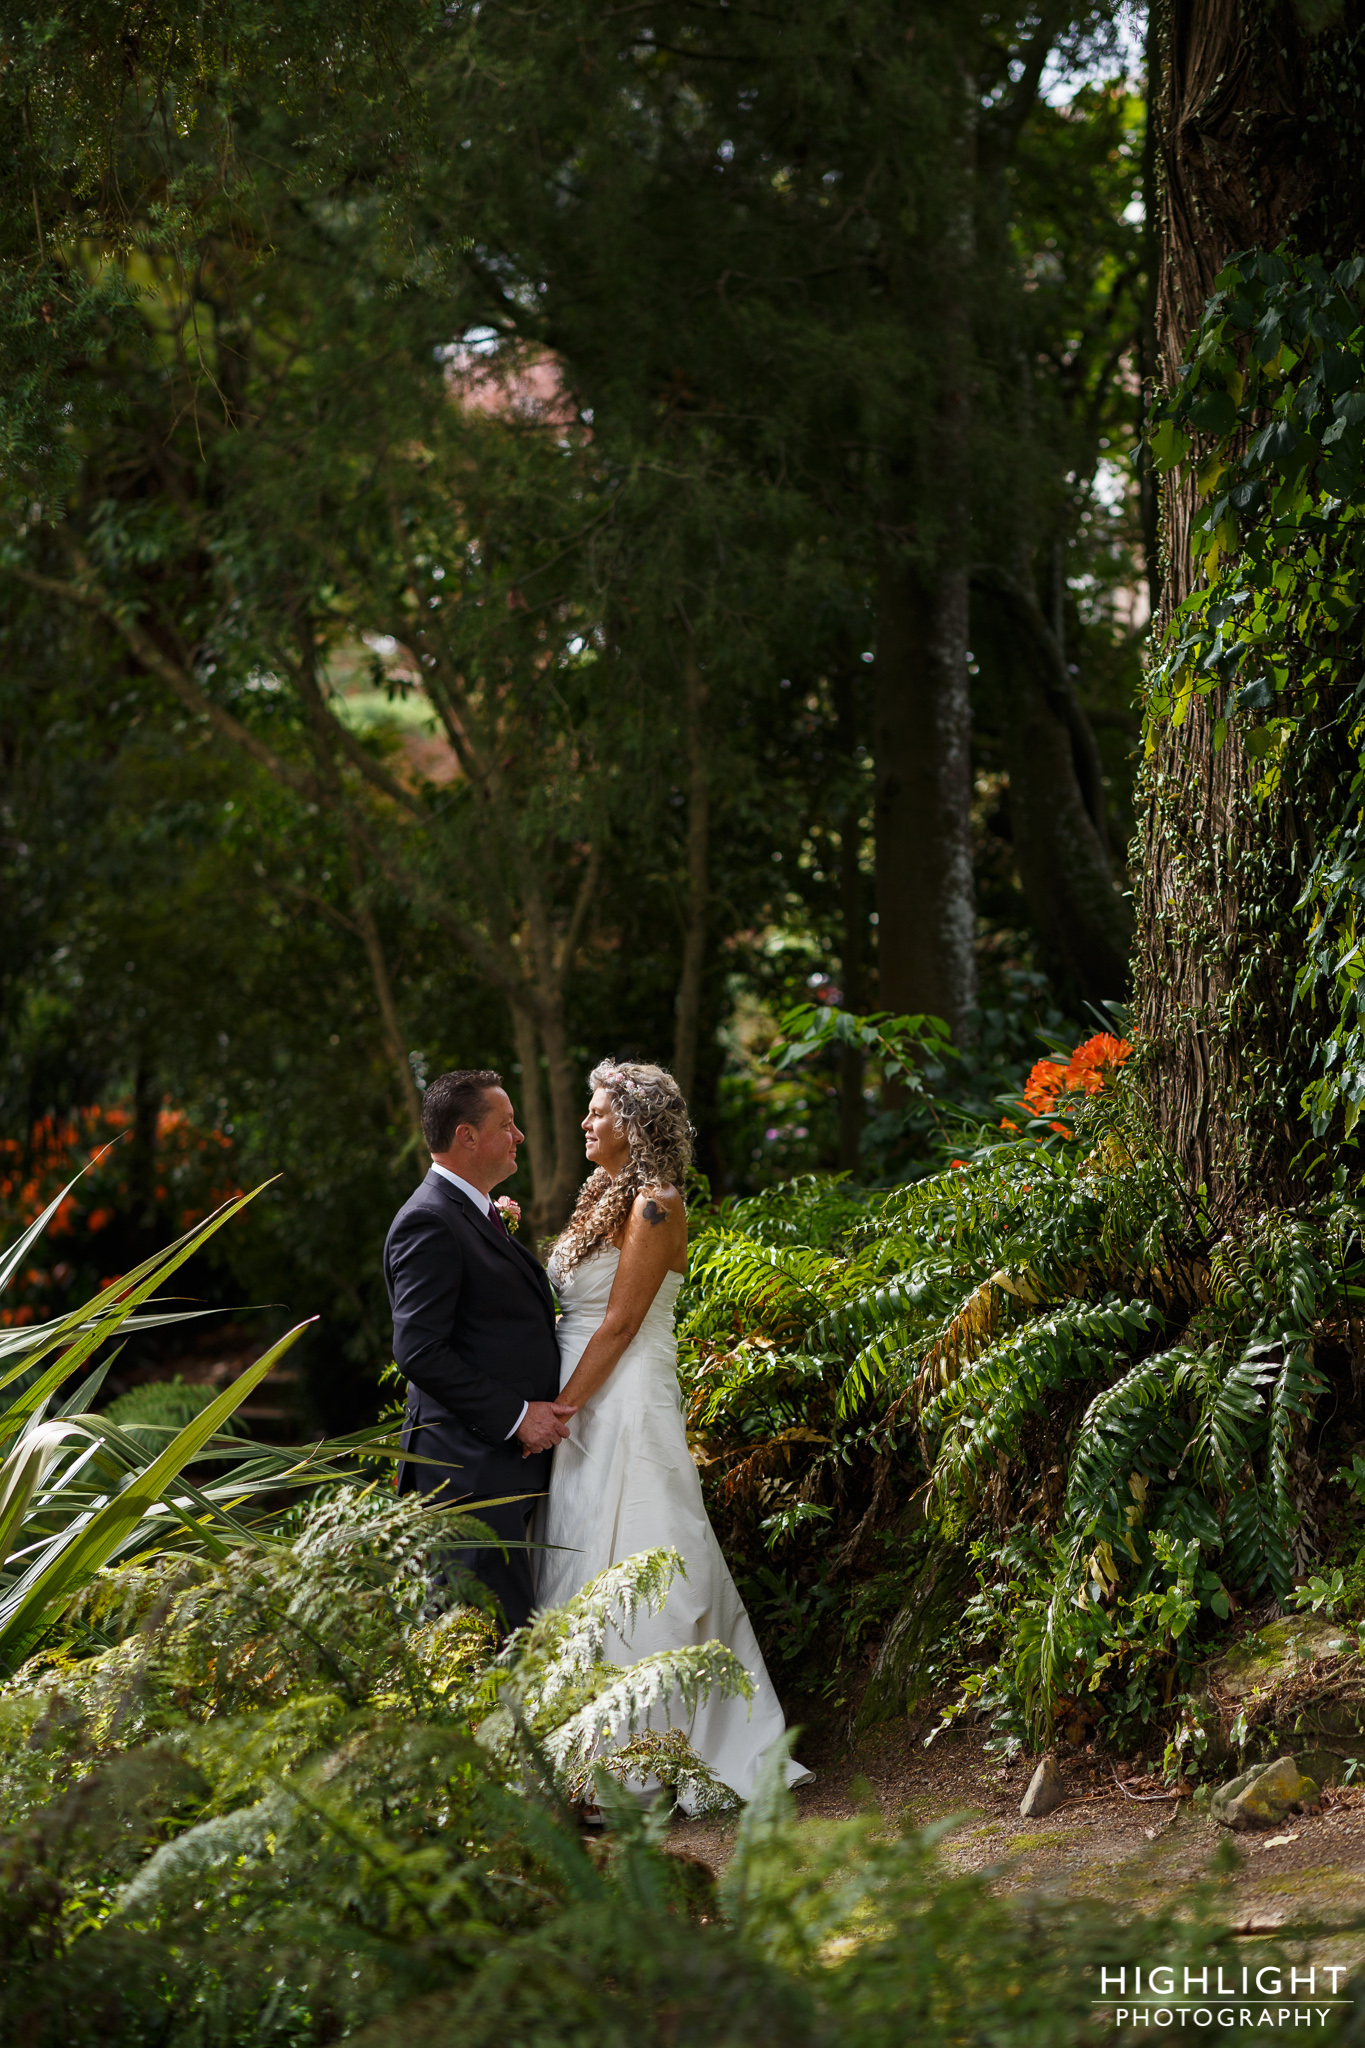 highlight_wedding_photography_palmerston_north_manawatu_chalet_wedding-68.jpg